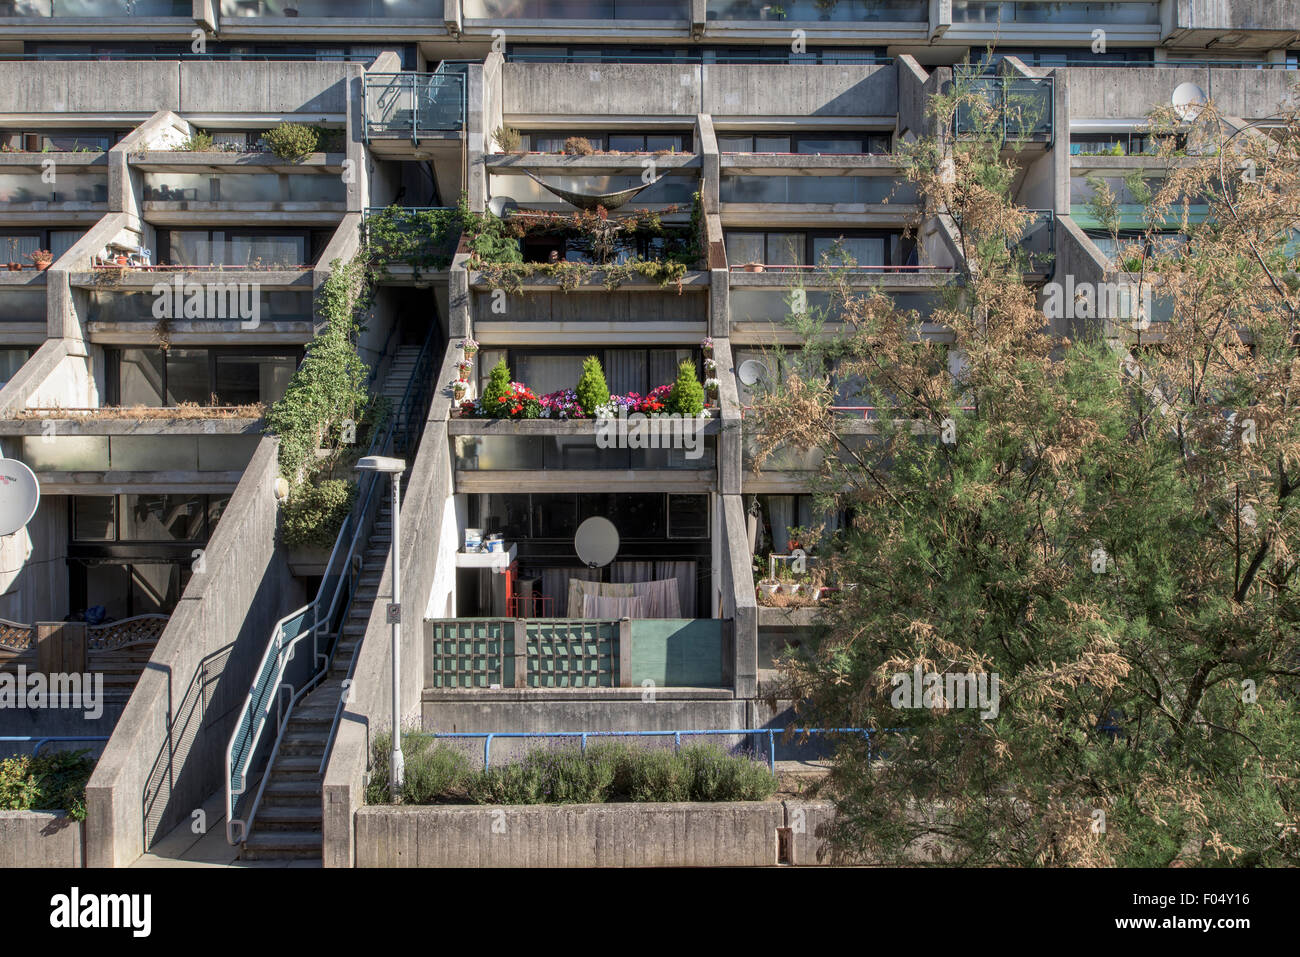 View showing ziggurat balconies, Alexandra Road Estate. Alexandra Road Estate, Camden, United Kingdom. Architect: Stock Photo